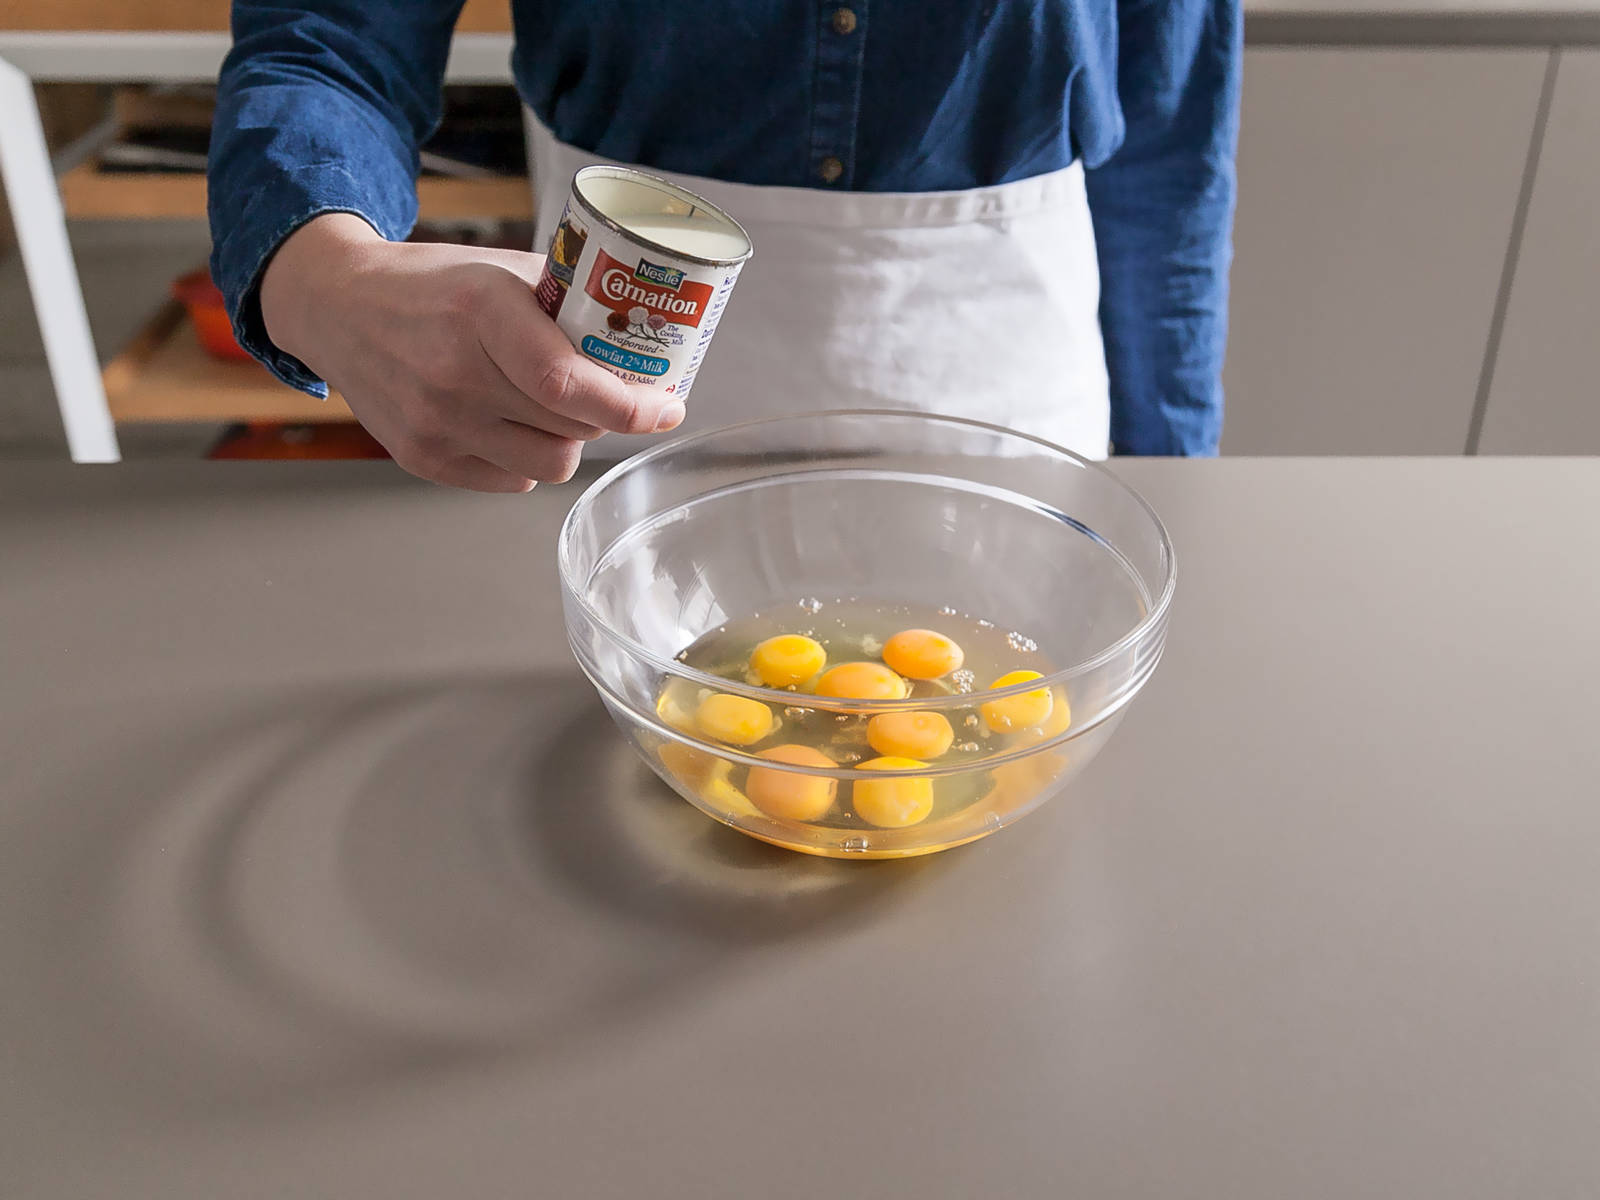 Preheat oven to 190°C/350°F. Spray muffin tin with cooking spray. Spoon chopped bell pepper into each cup. Beat eggs and evaporated milk in large bowl. Season with salt and pepper.